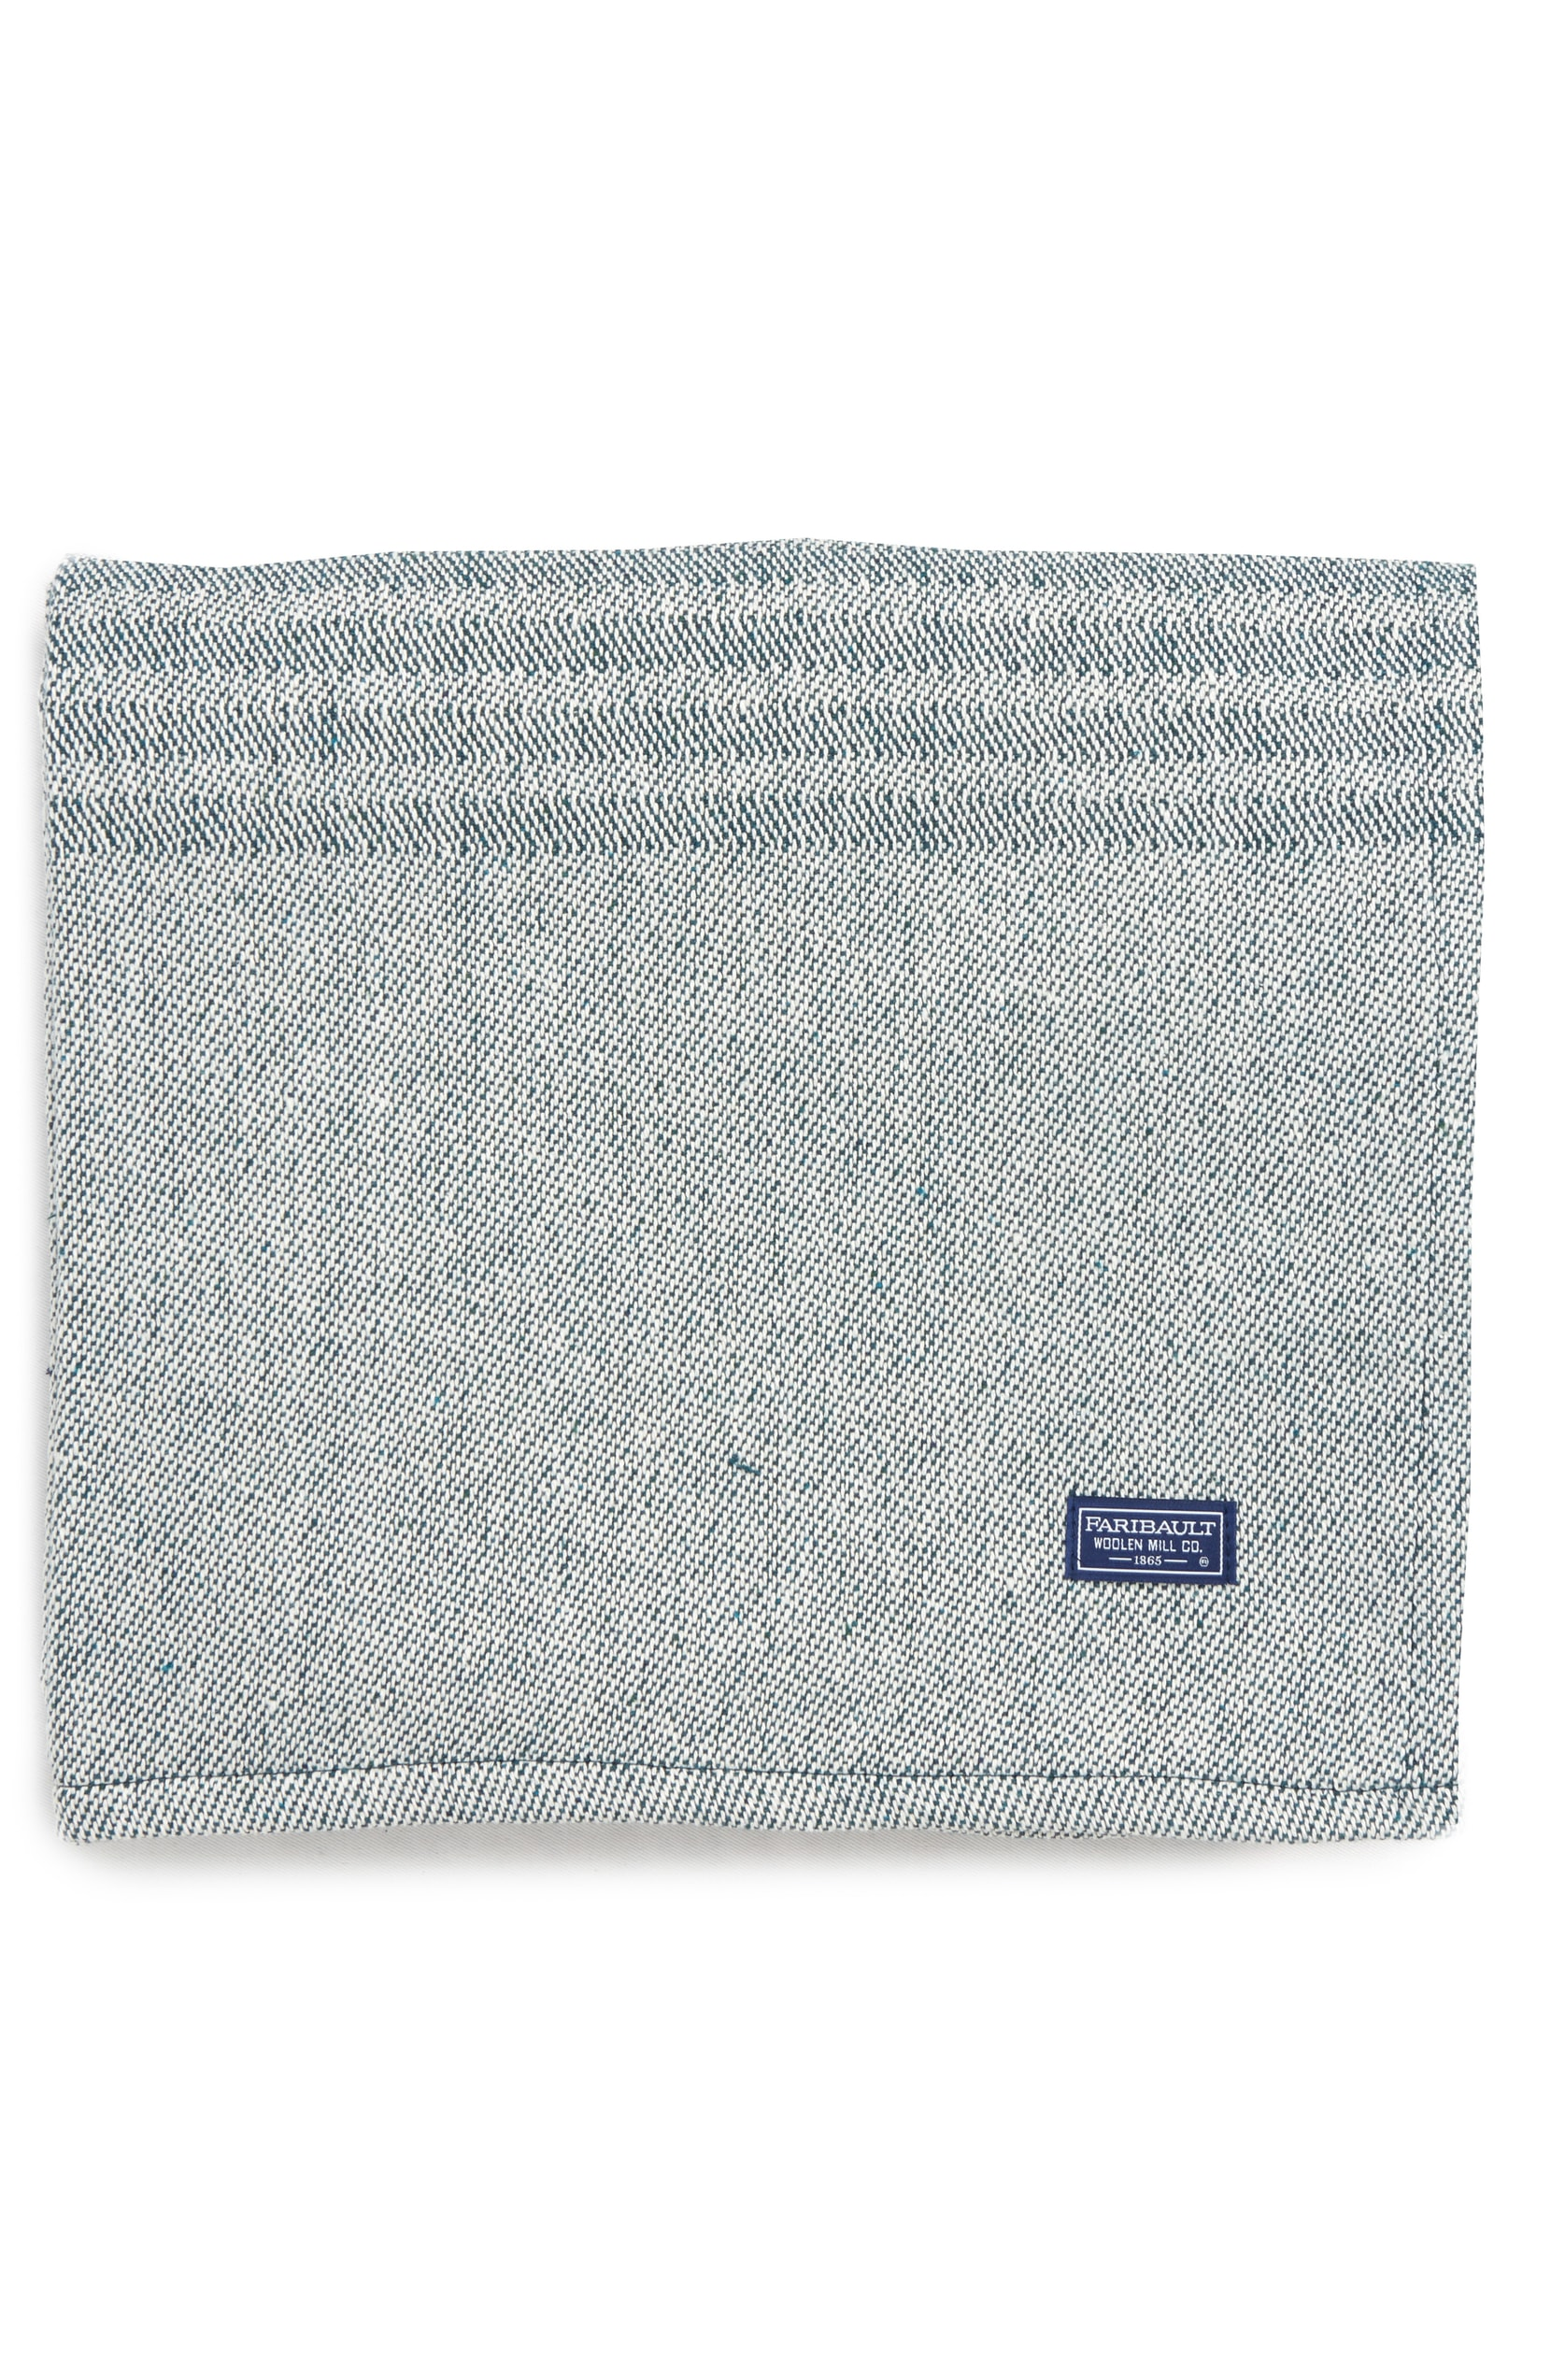 FARIBAULT WOOLEN MILL Recycled Cotton Beach Throw Blanket